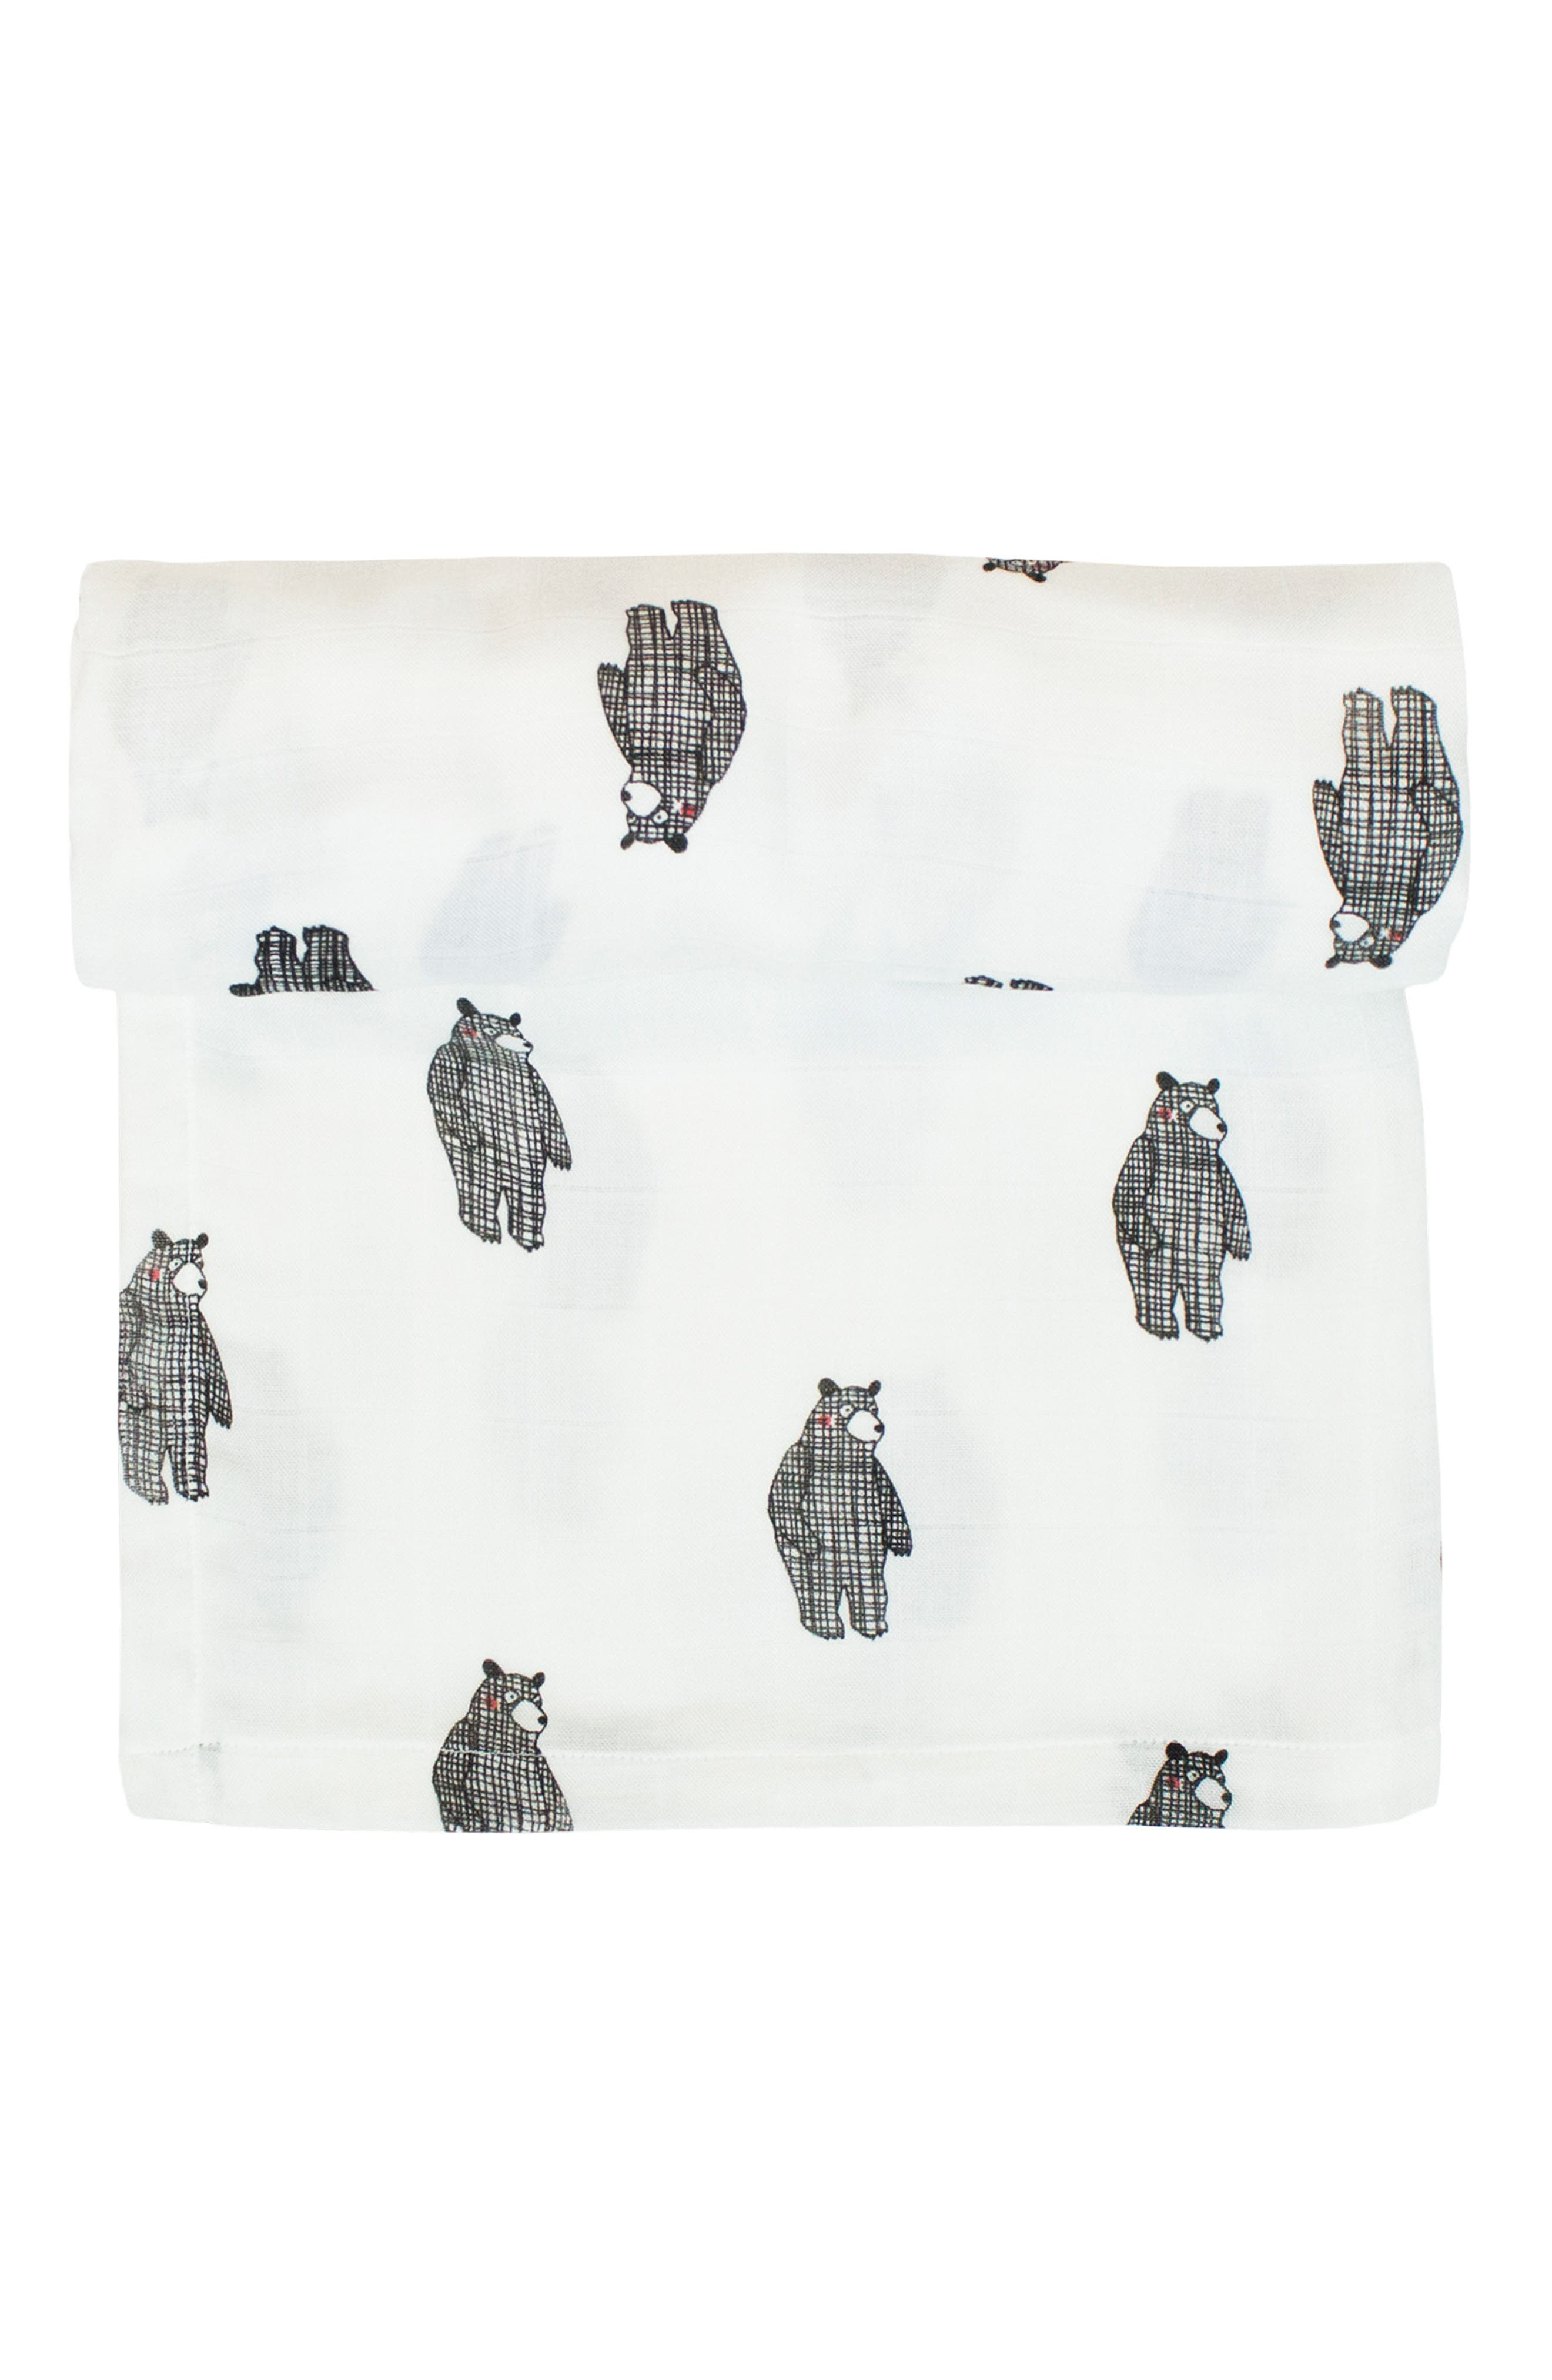 2-Pack Cuddle Blankets,                             Alternate thumbnail 6, color,                             BIG BEAR/ MONO BIRDS